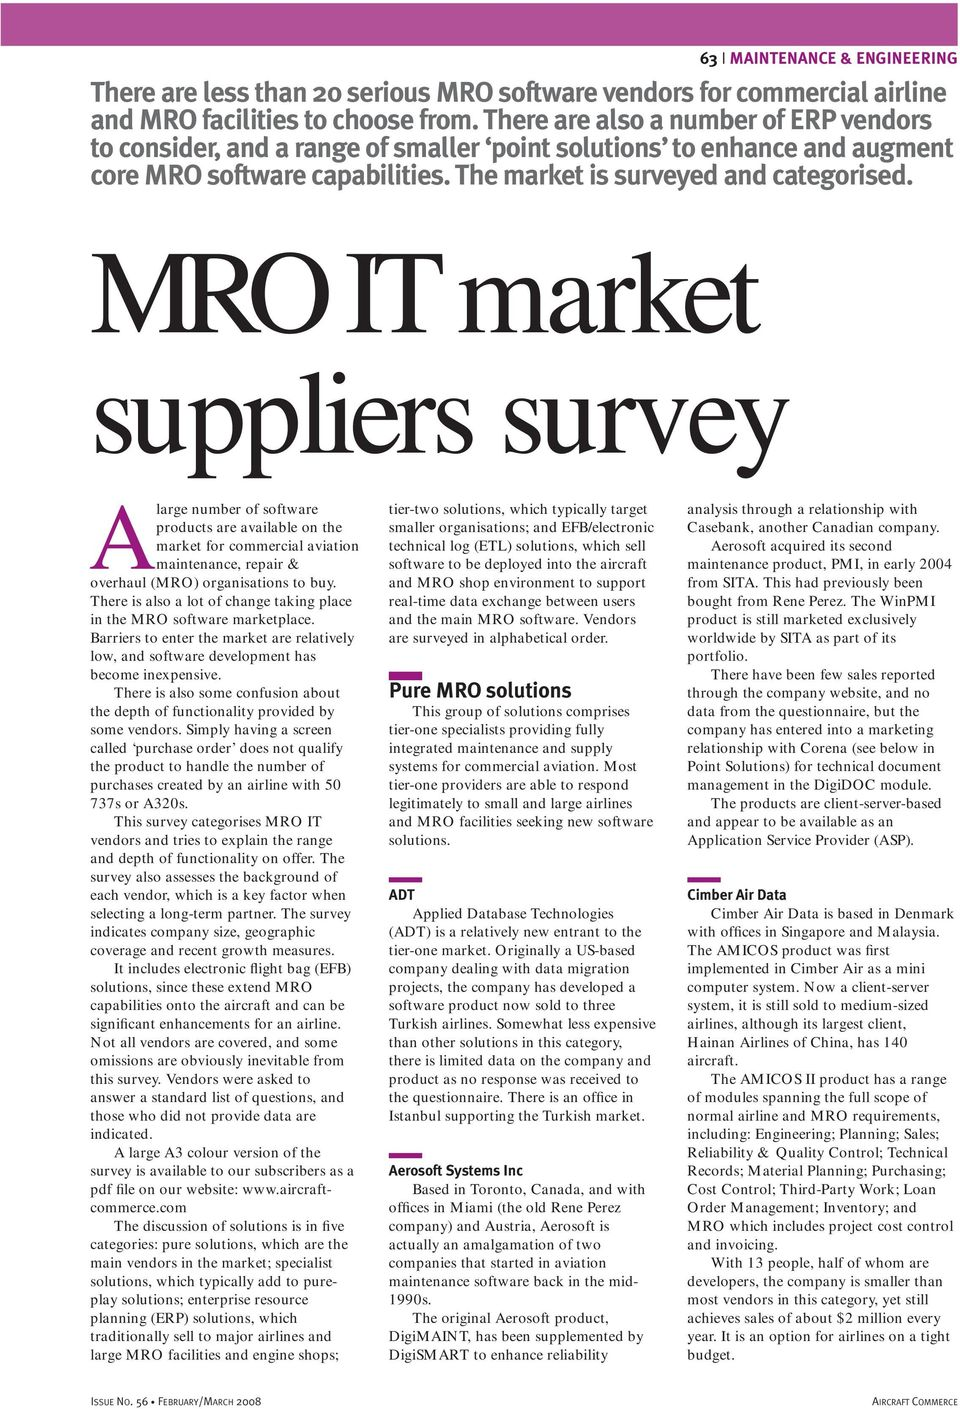 MRO IT market suppliers survey Alarge number of software products are available on the market for commercial aviation maintenance, repair & overhaul (MRO) organisations to buy.